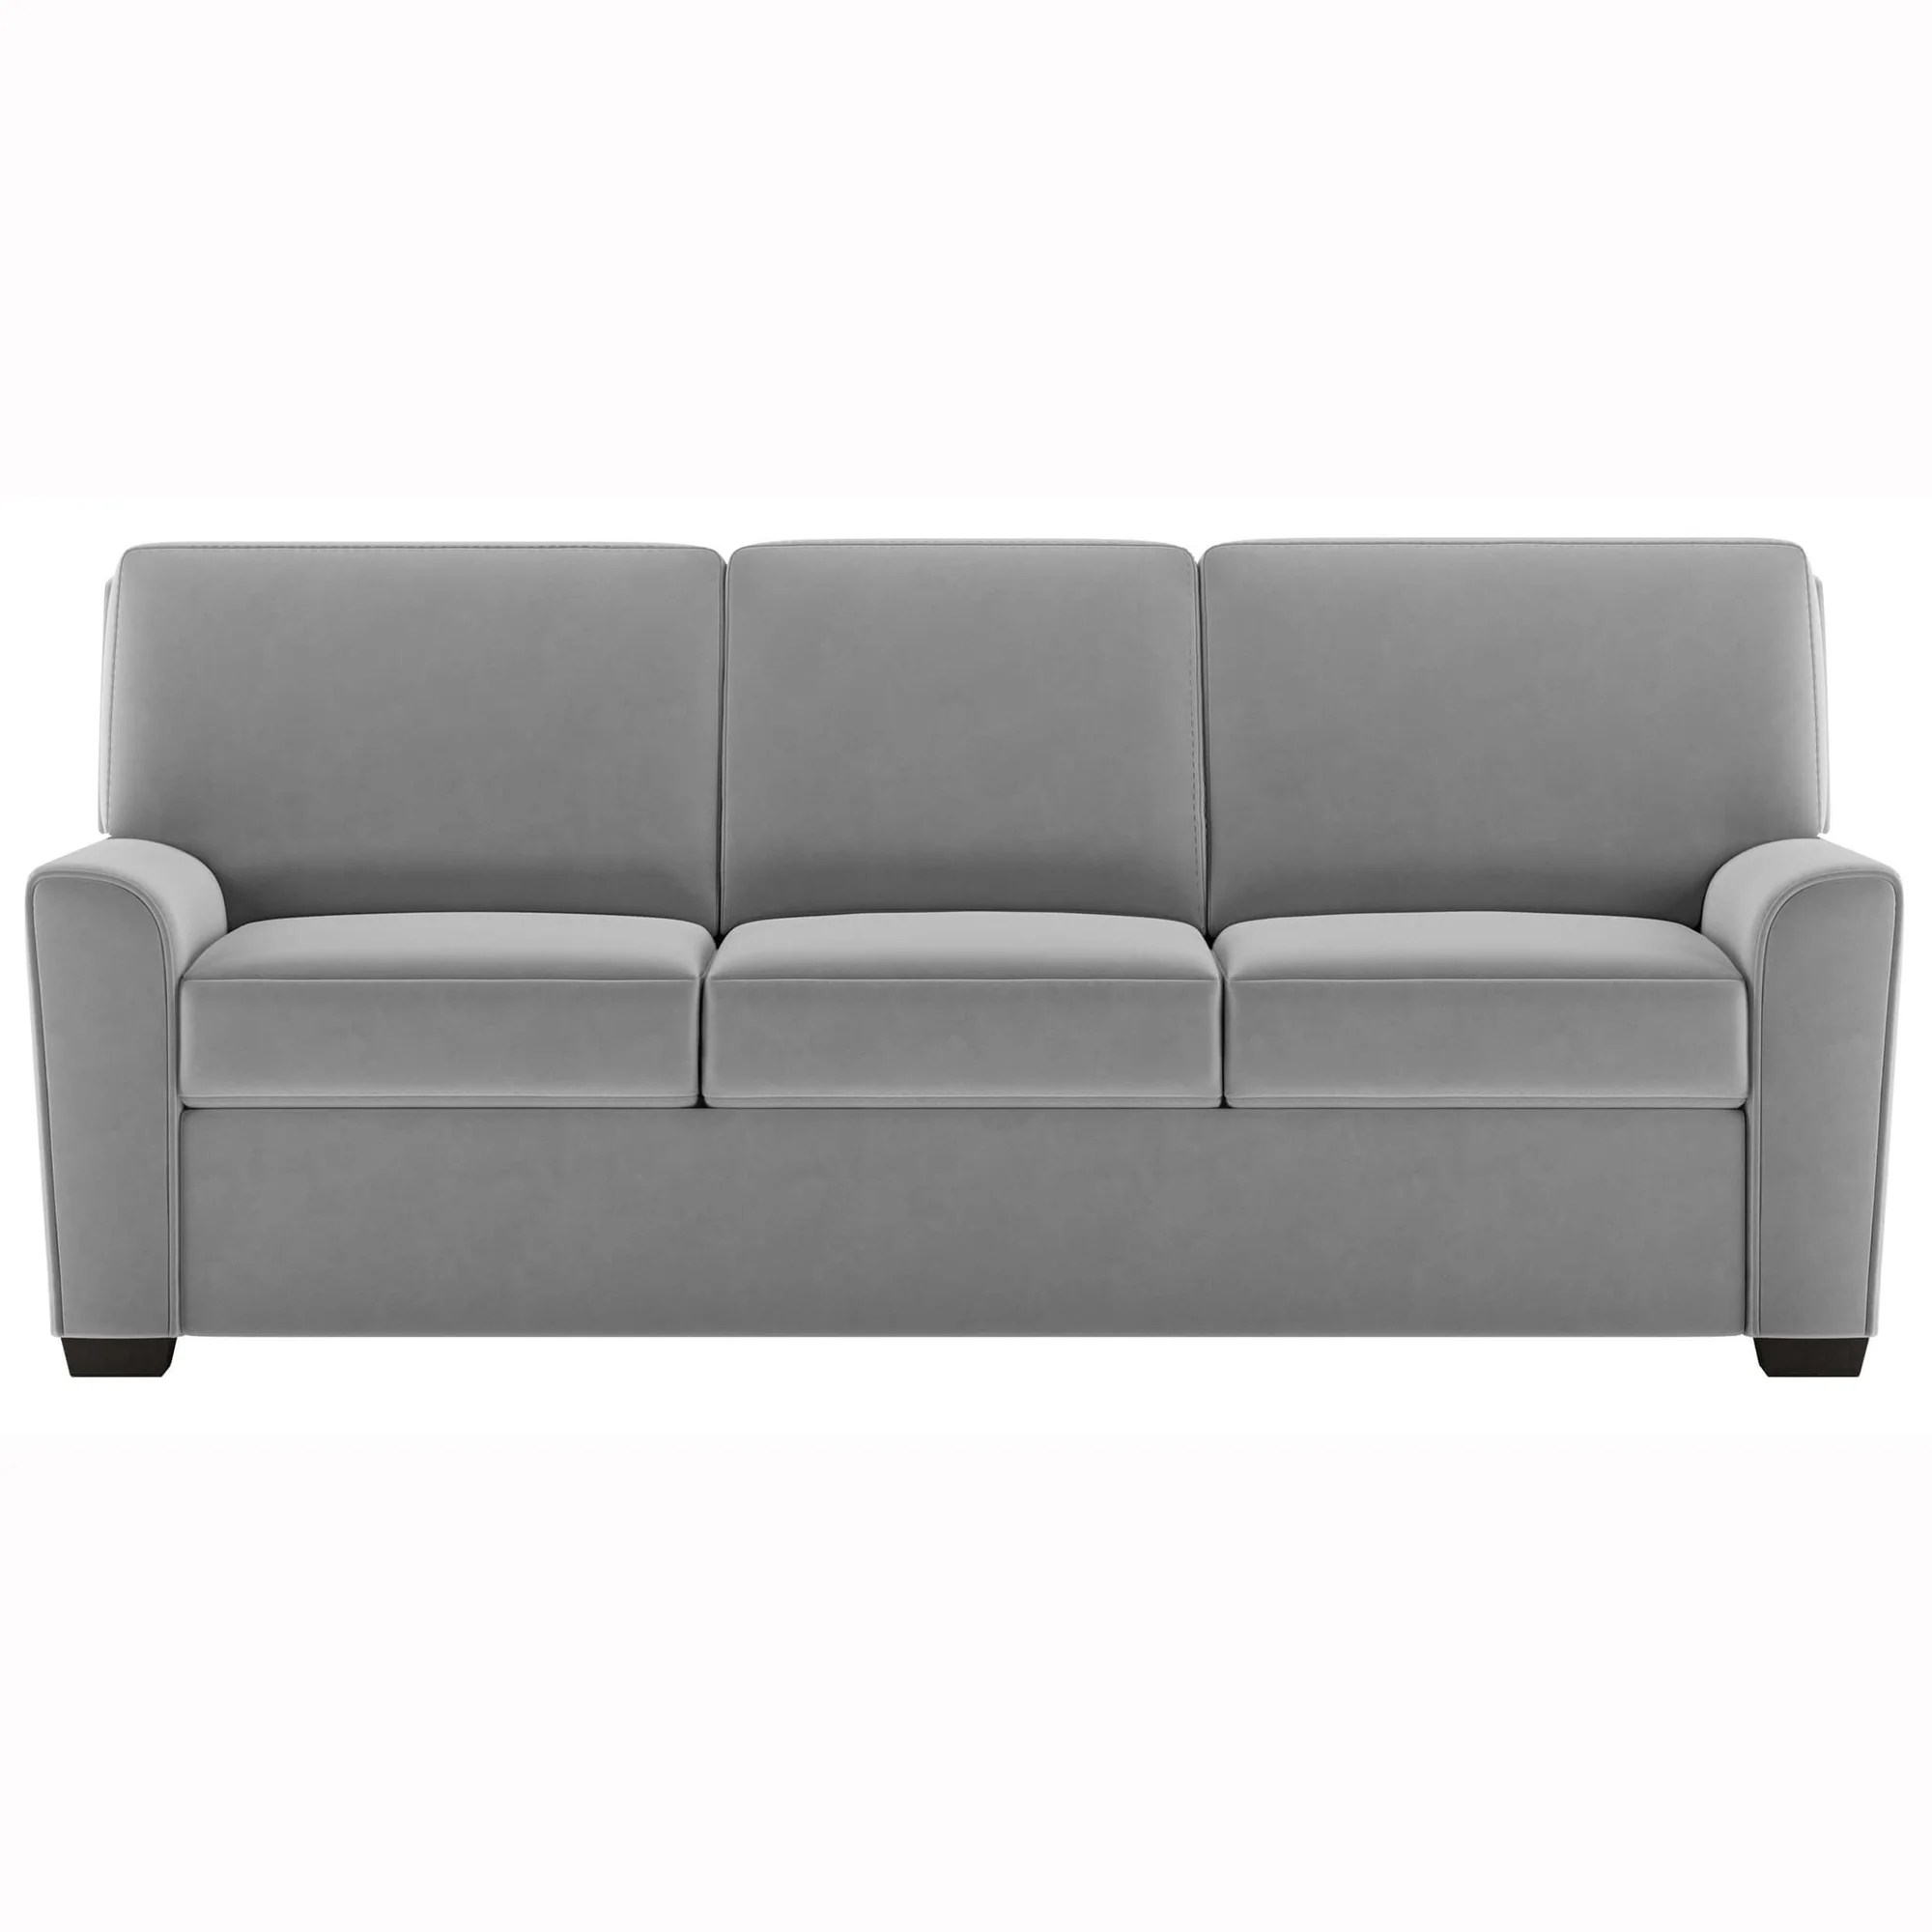 American Leather Klein Queen Sleeper Sofa Toray Ultrasuede French Gray